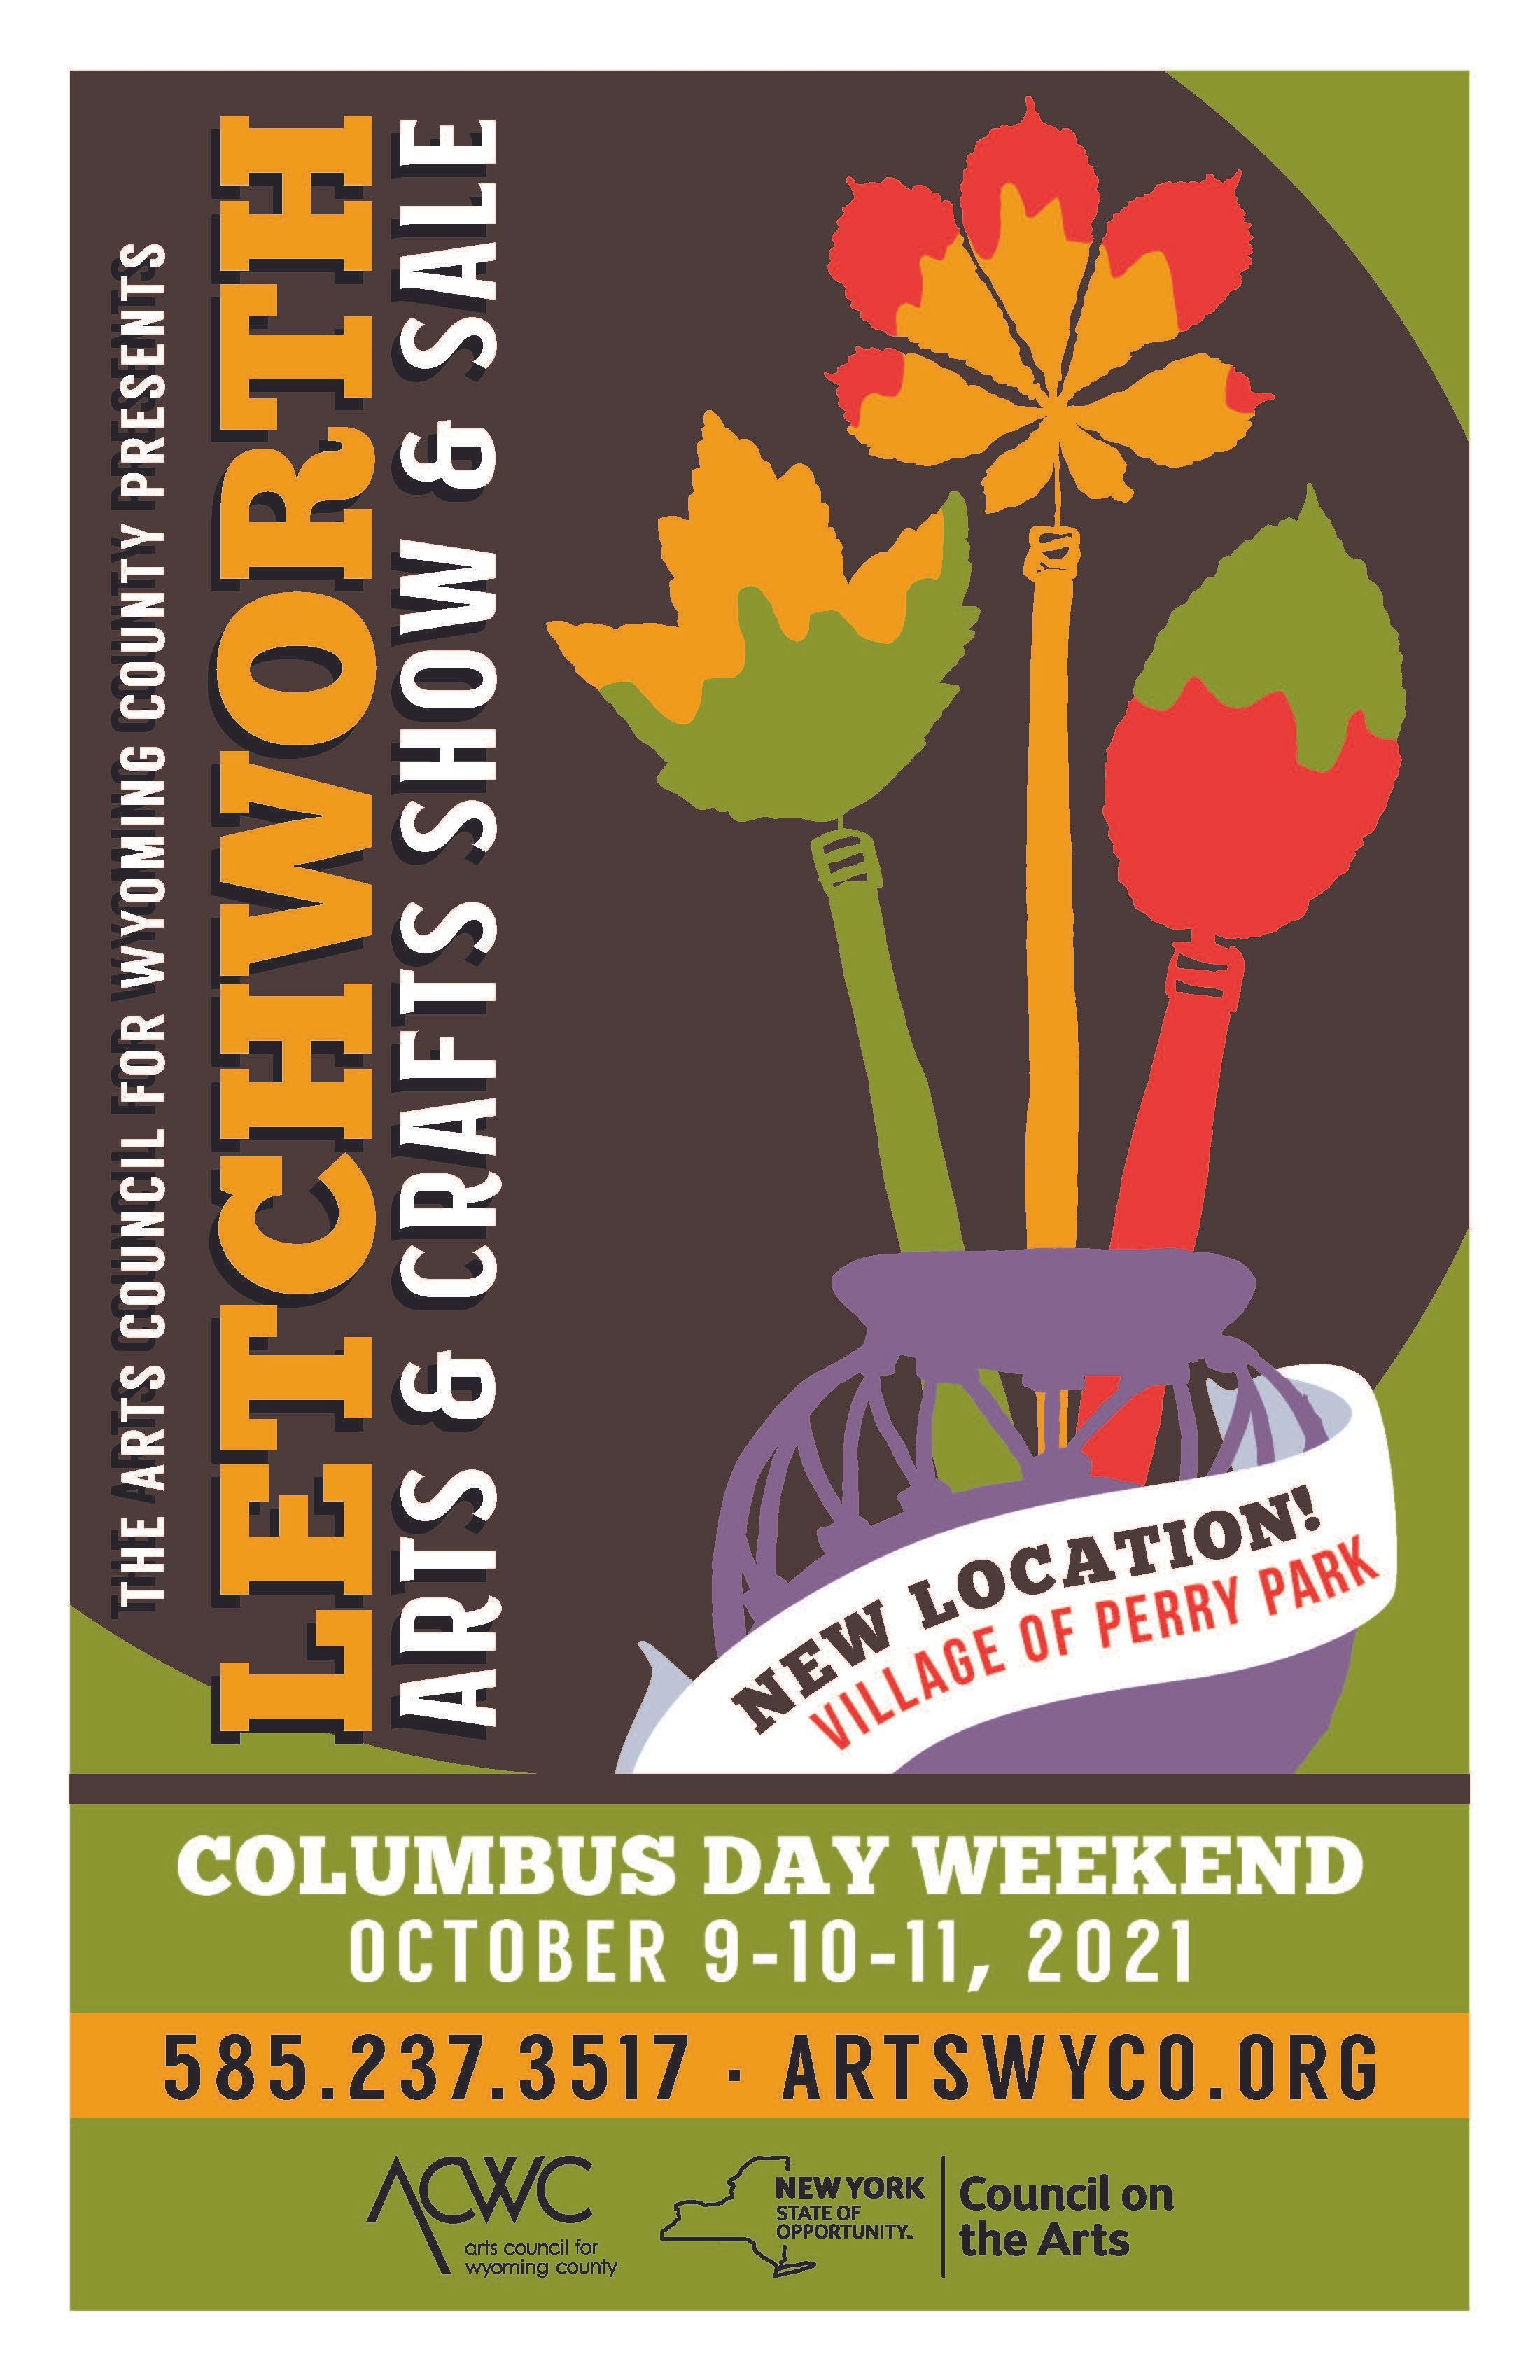 Letchworth Arts & Crafts Show & Sale  is Coming to the Village Park in Perry, NY